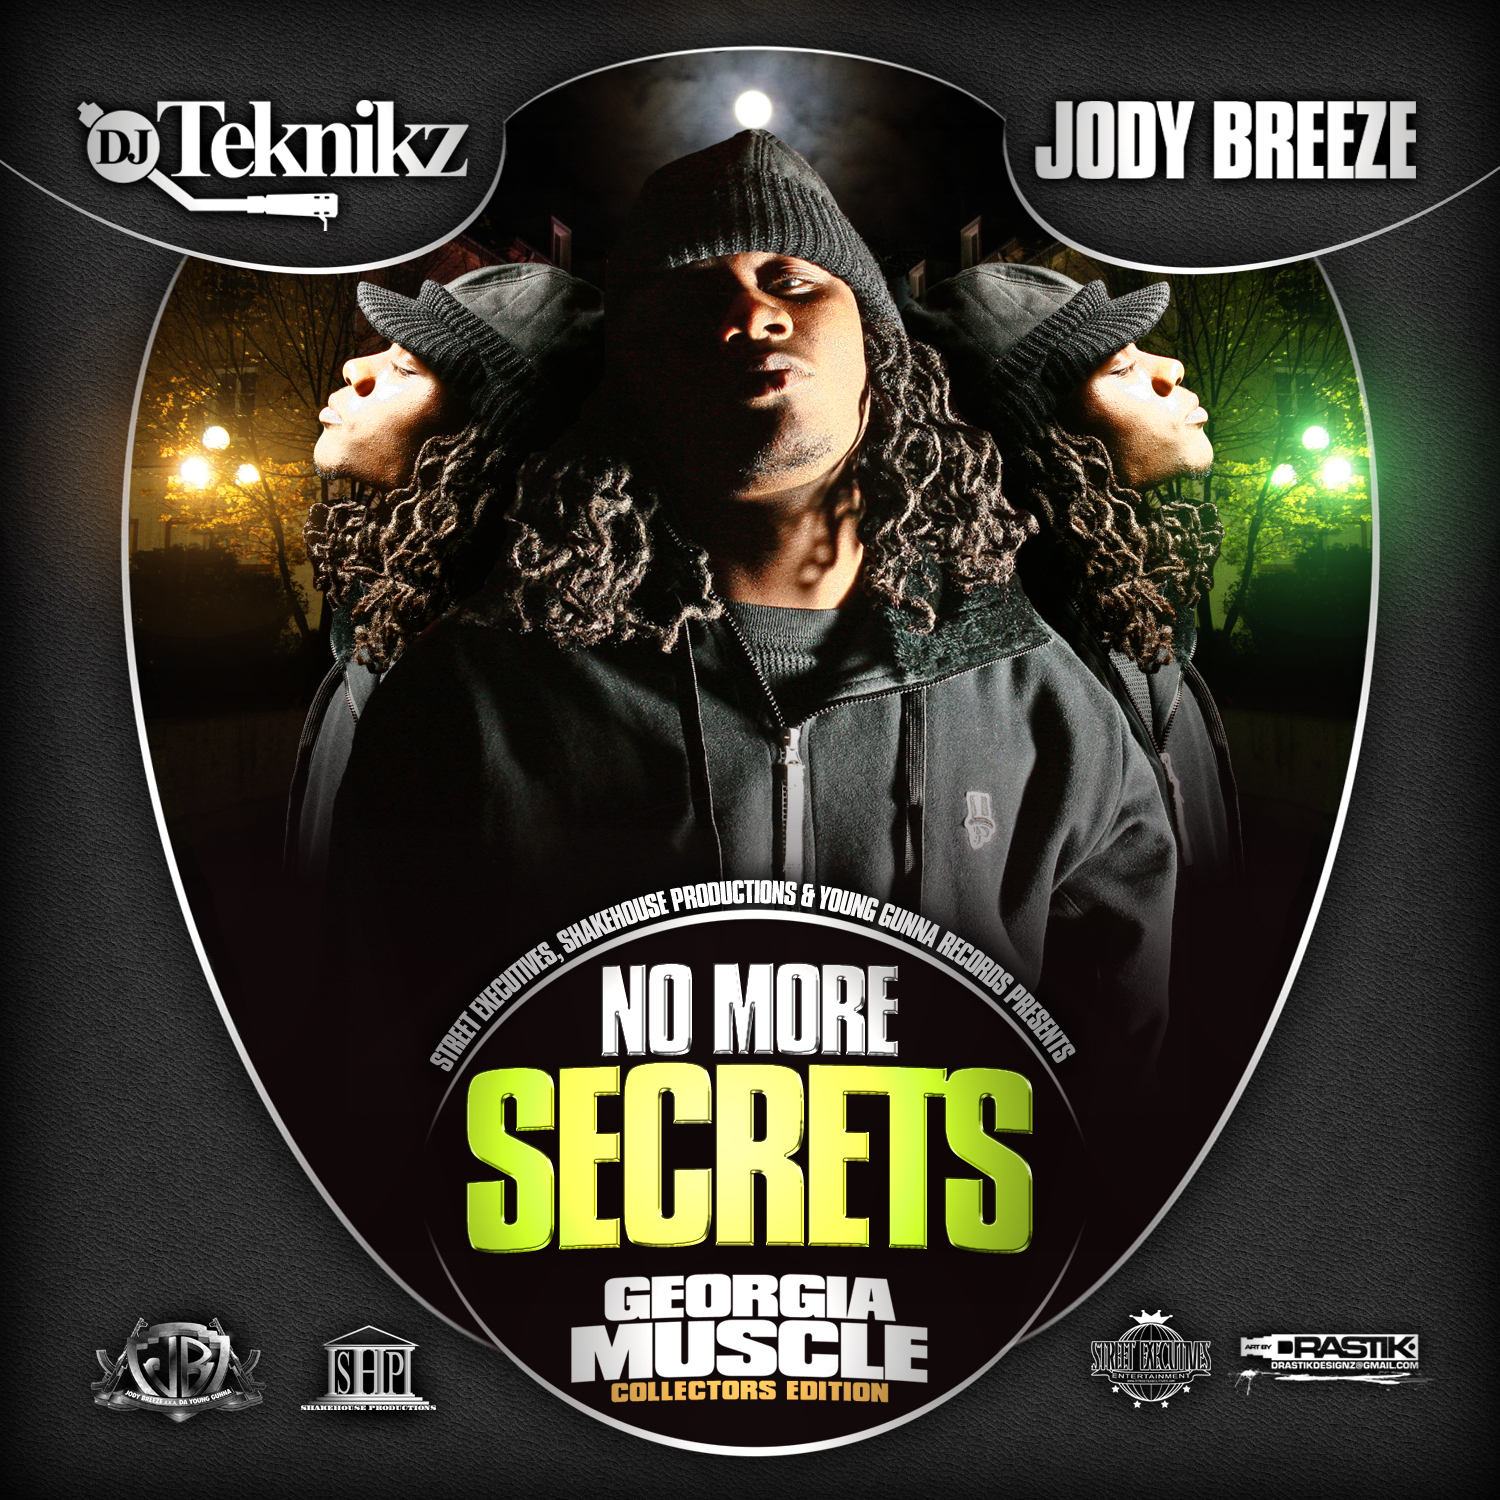 jody breeze best kept secret 2